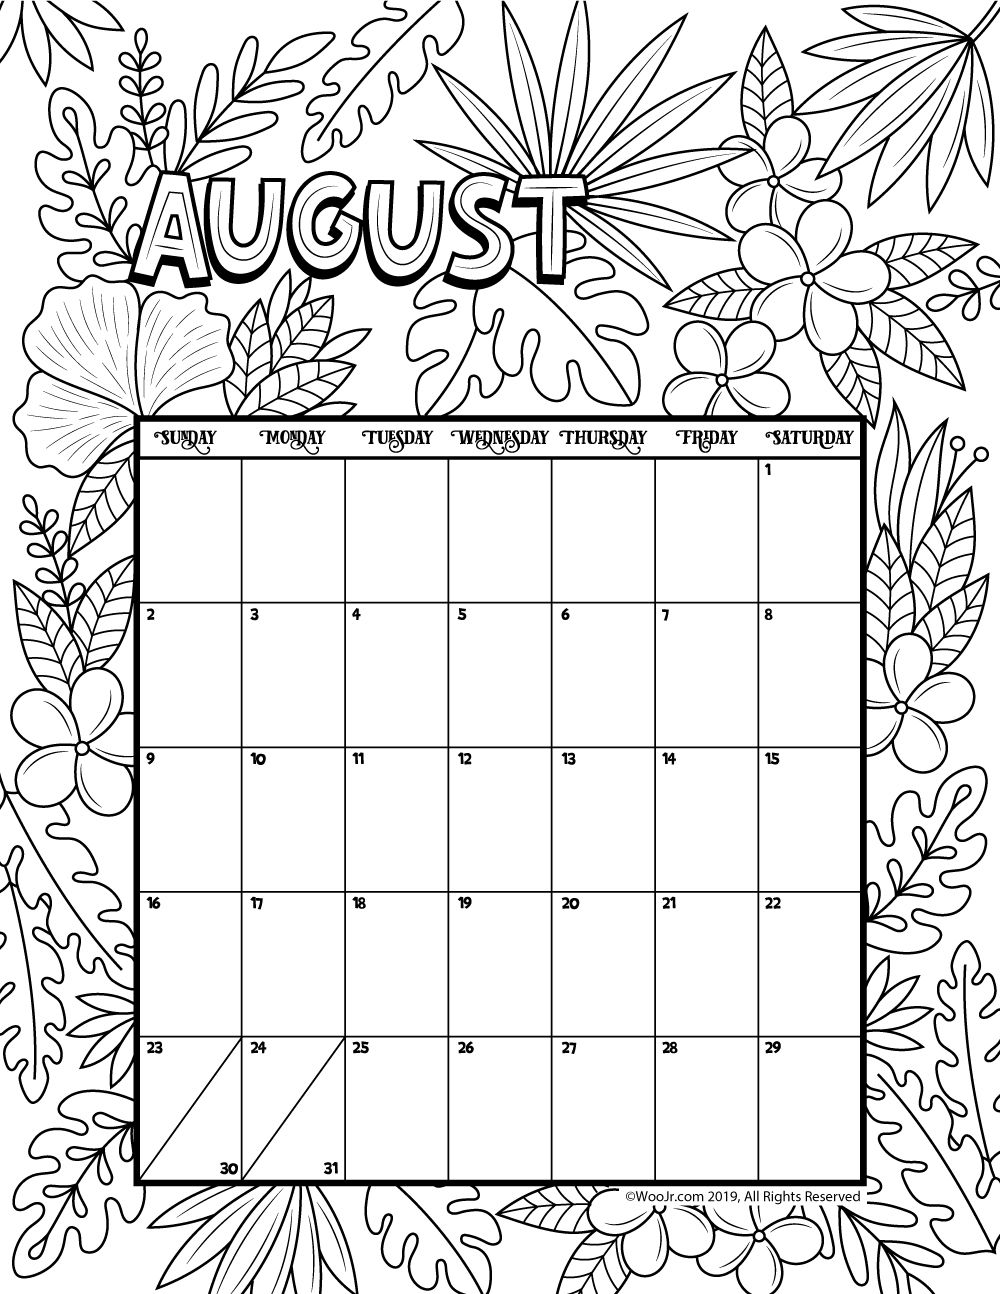 August 2020 Coloring Calendar Woo! Jr. Kids Activities